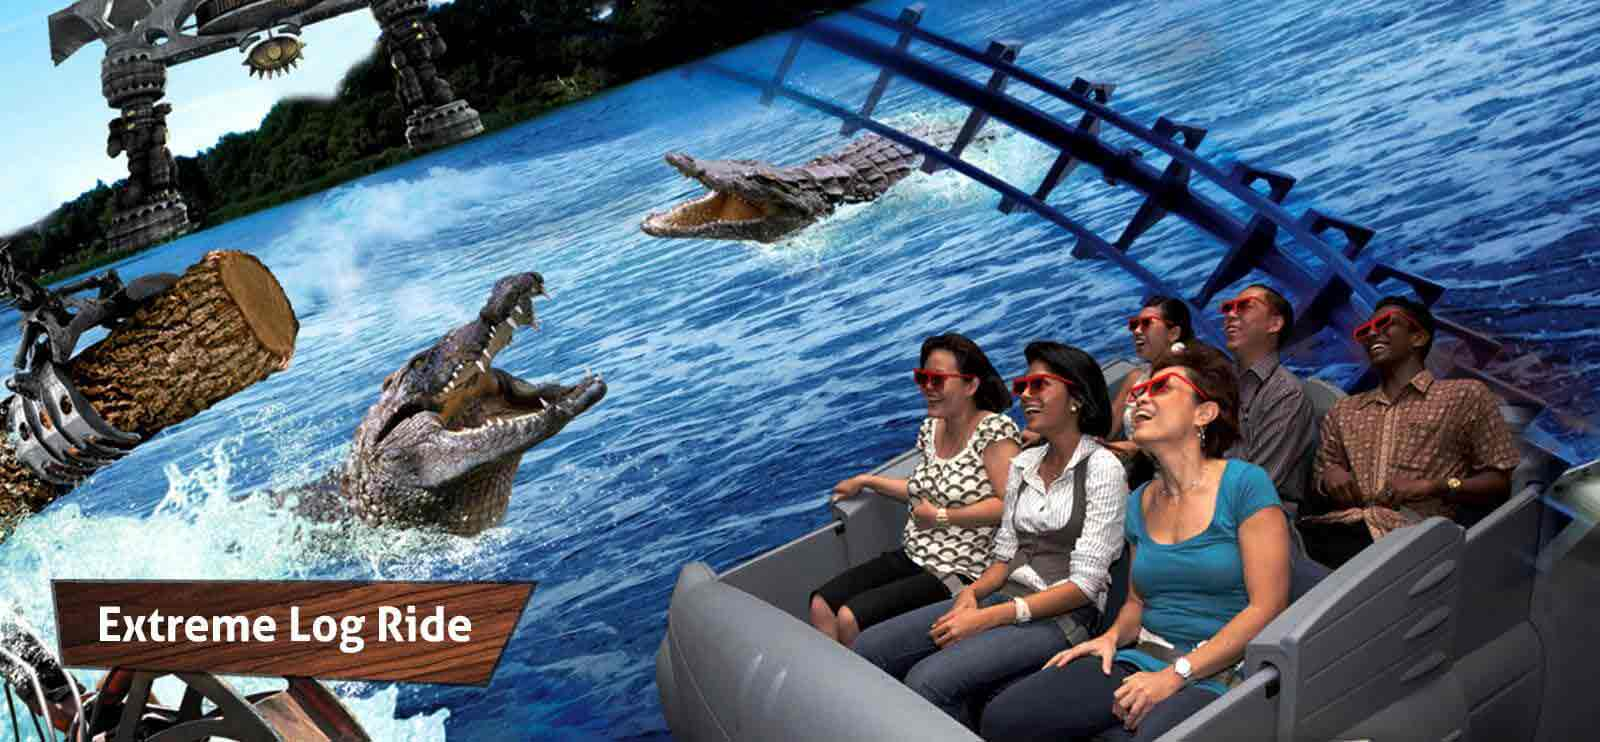 Sentosa's 4D Adventureland shows